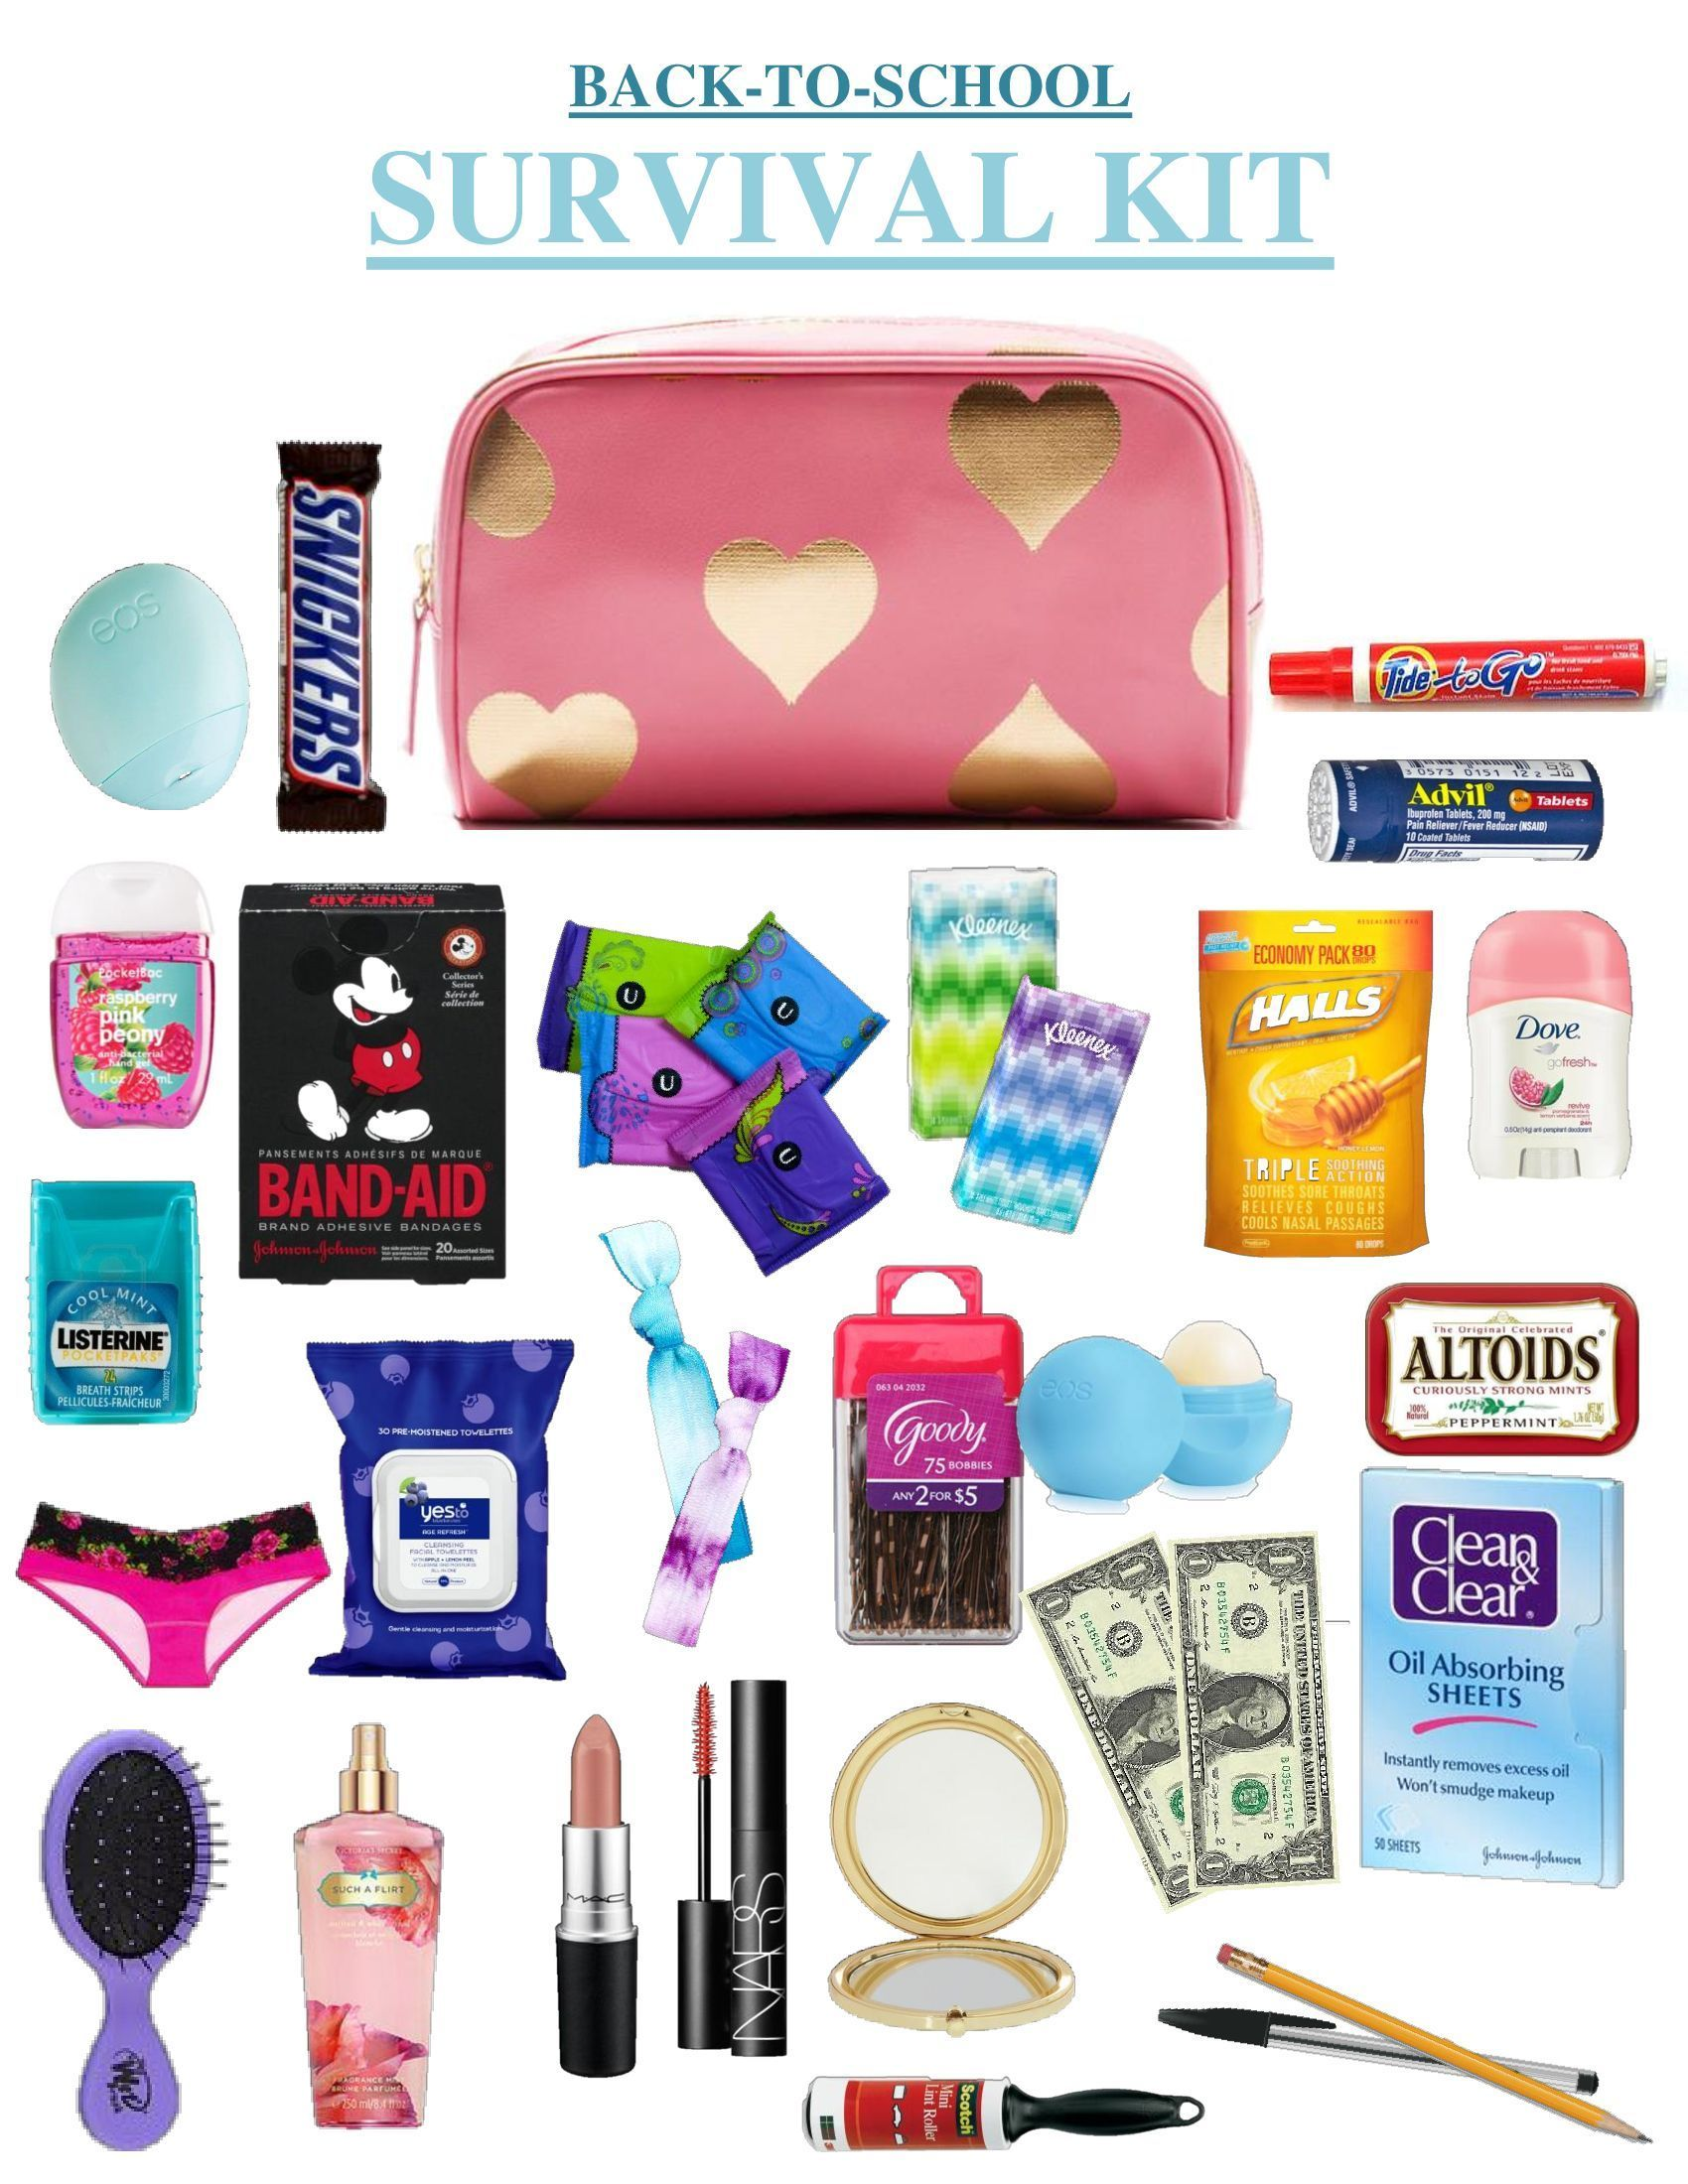 Some little goodies that ALL high school girls should keep in their locker or backpack. This kit is PERFECT for Back To School. The items in here range from pens and pencils to cute Mickey Mouse band-aids, all things that could be a complete lifesaver. Hope you enjoy your own DIY emergency/survival kit! #survivalschool #backtoschool